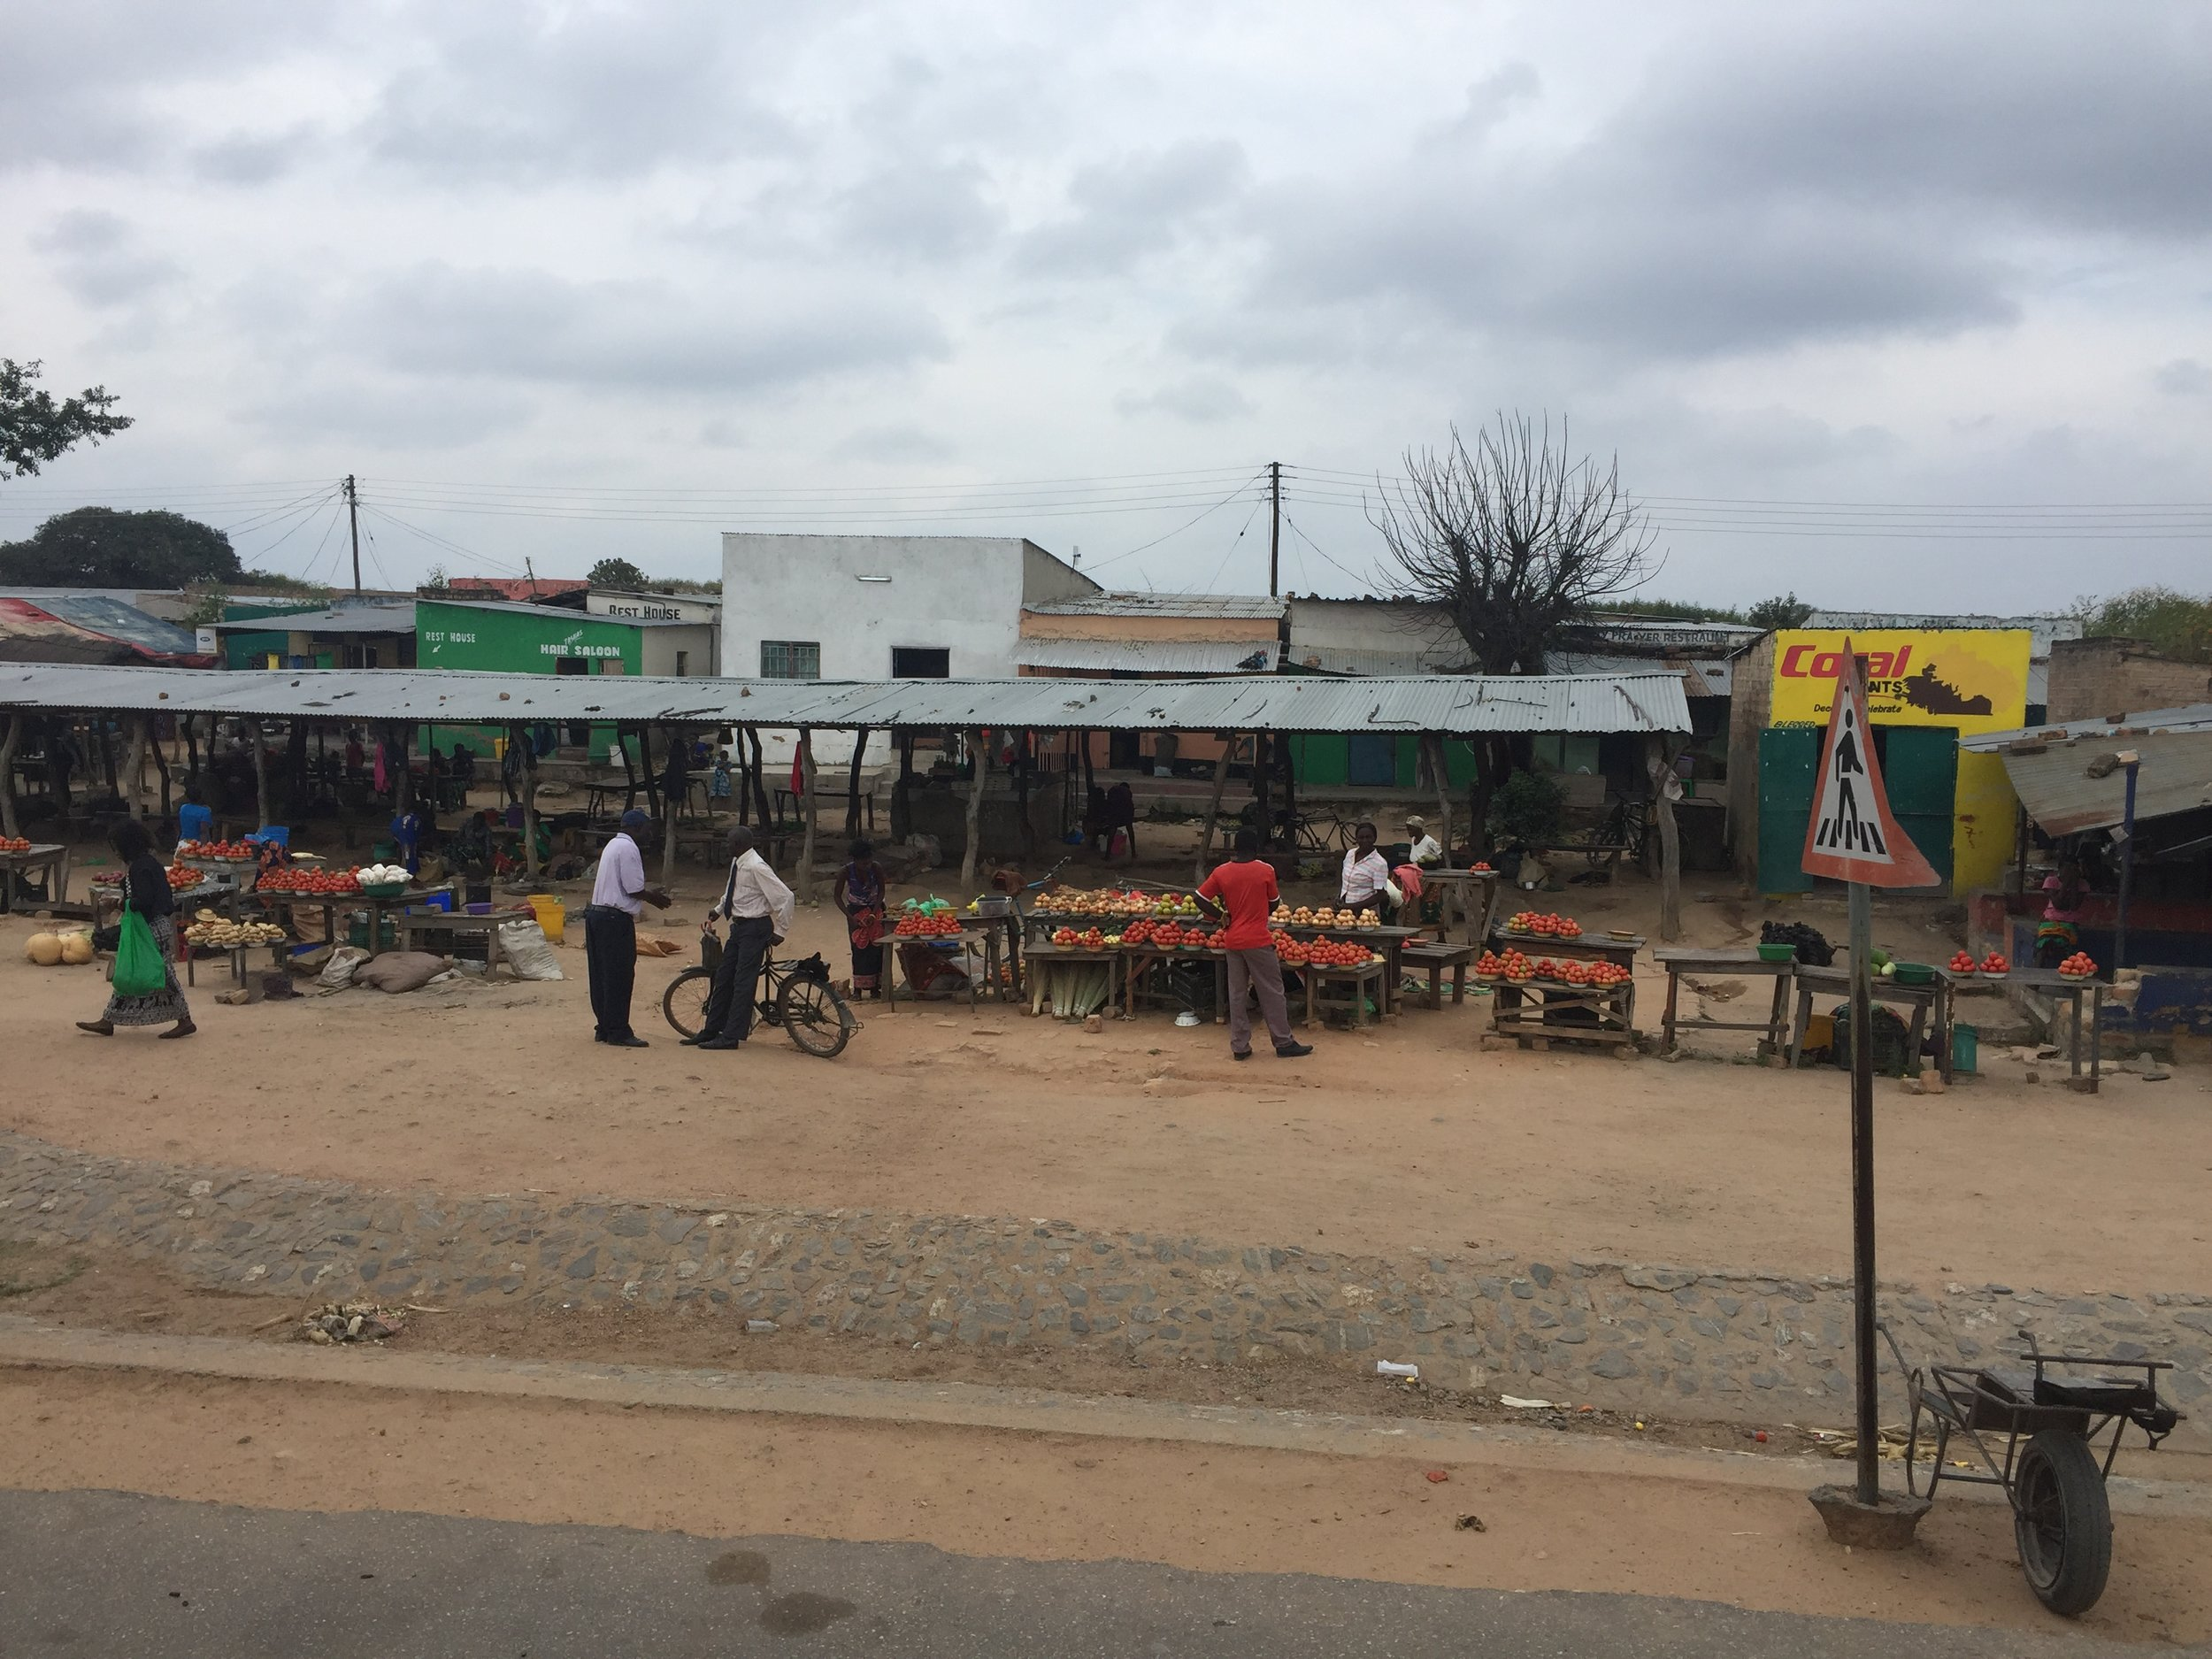 A typical streetside market along the highway from Lusaka to Chipata on the Mozambique border.